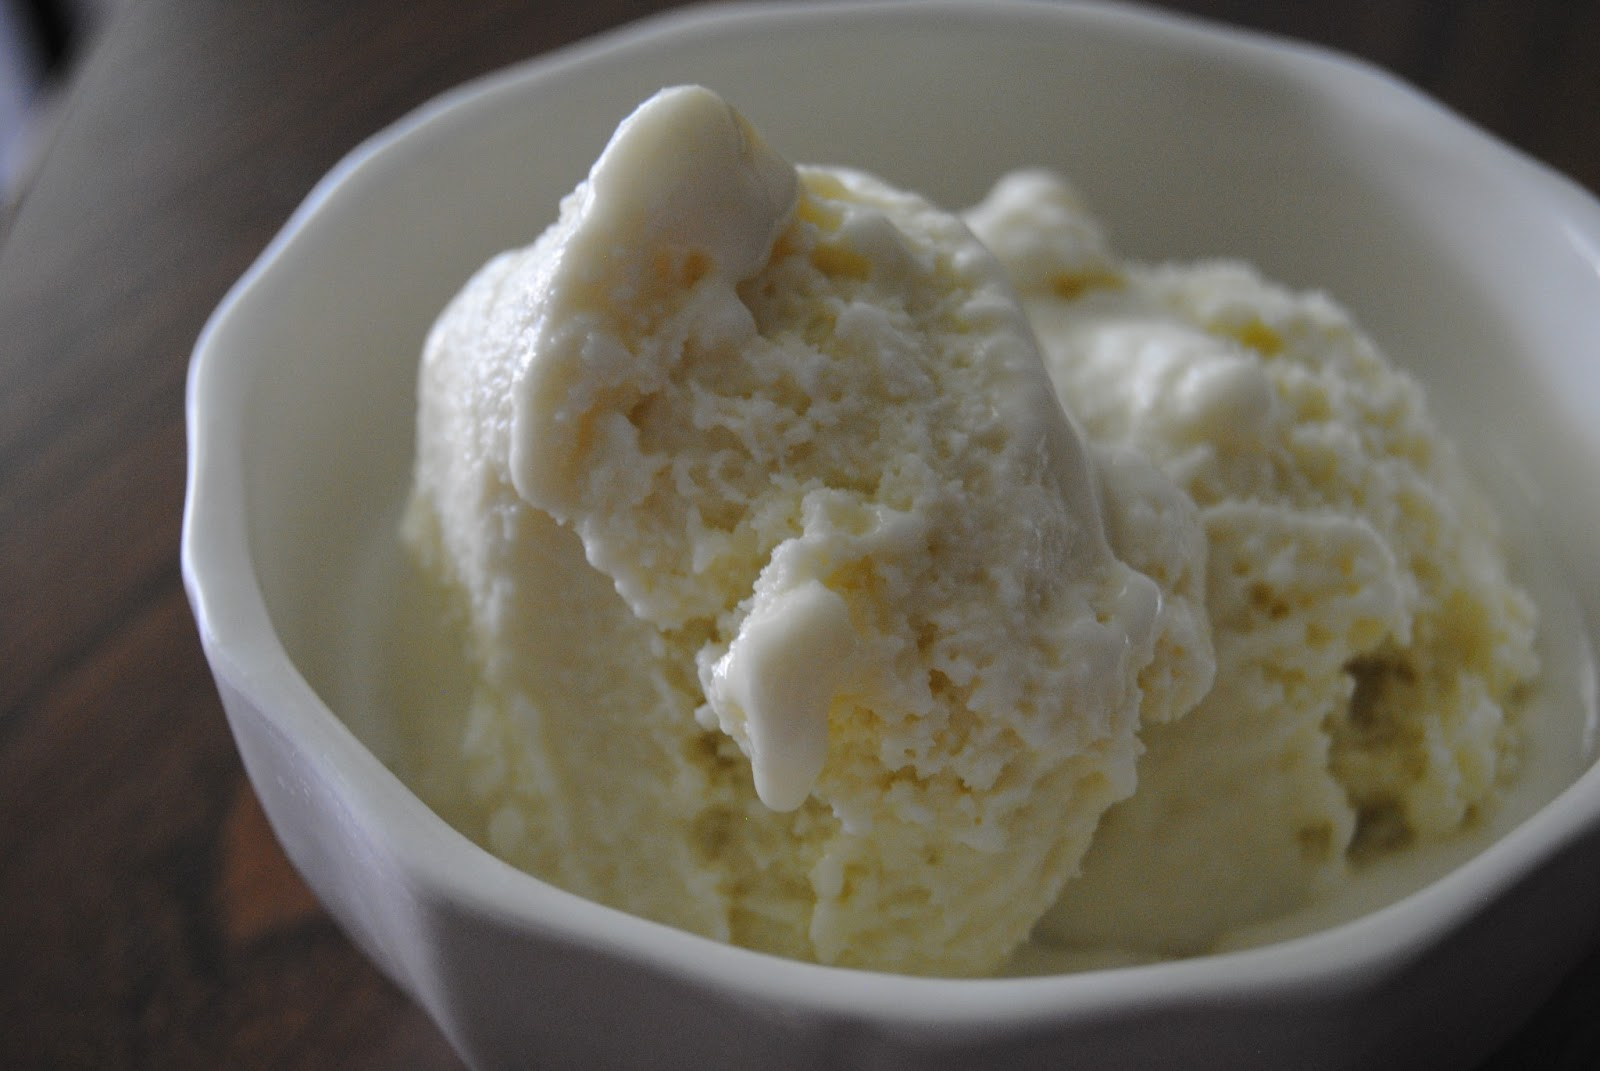 ... Celiac: Dairy-Free, Gluten-Free Coconut Ice Cream Recipe Review